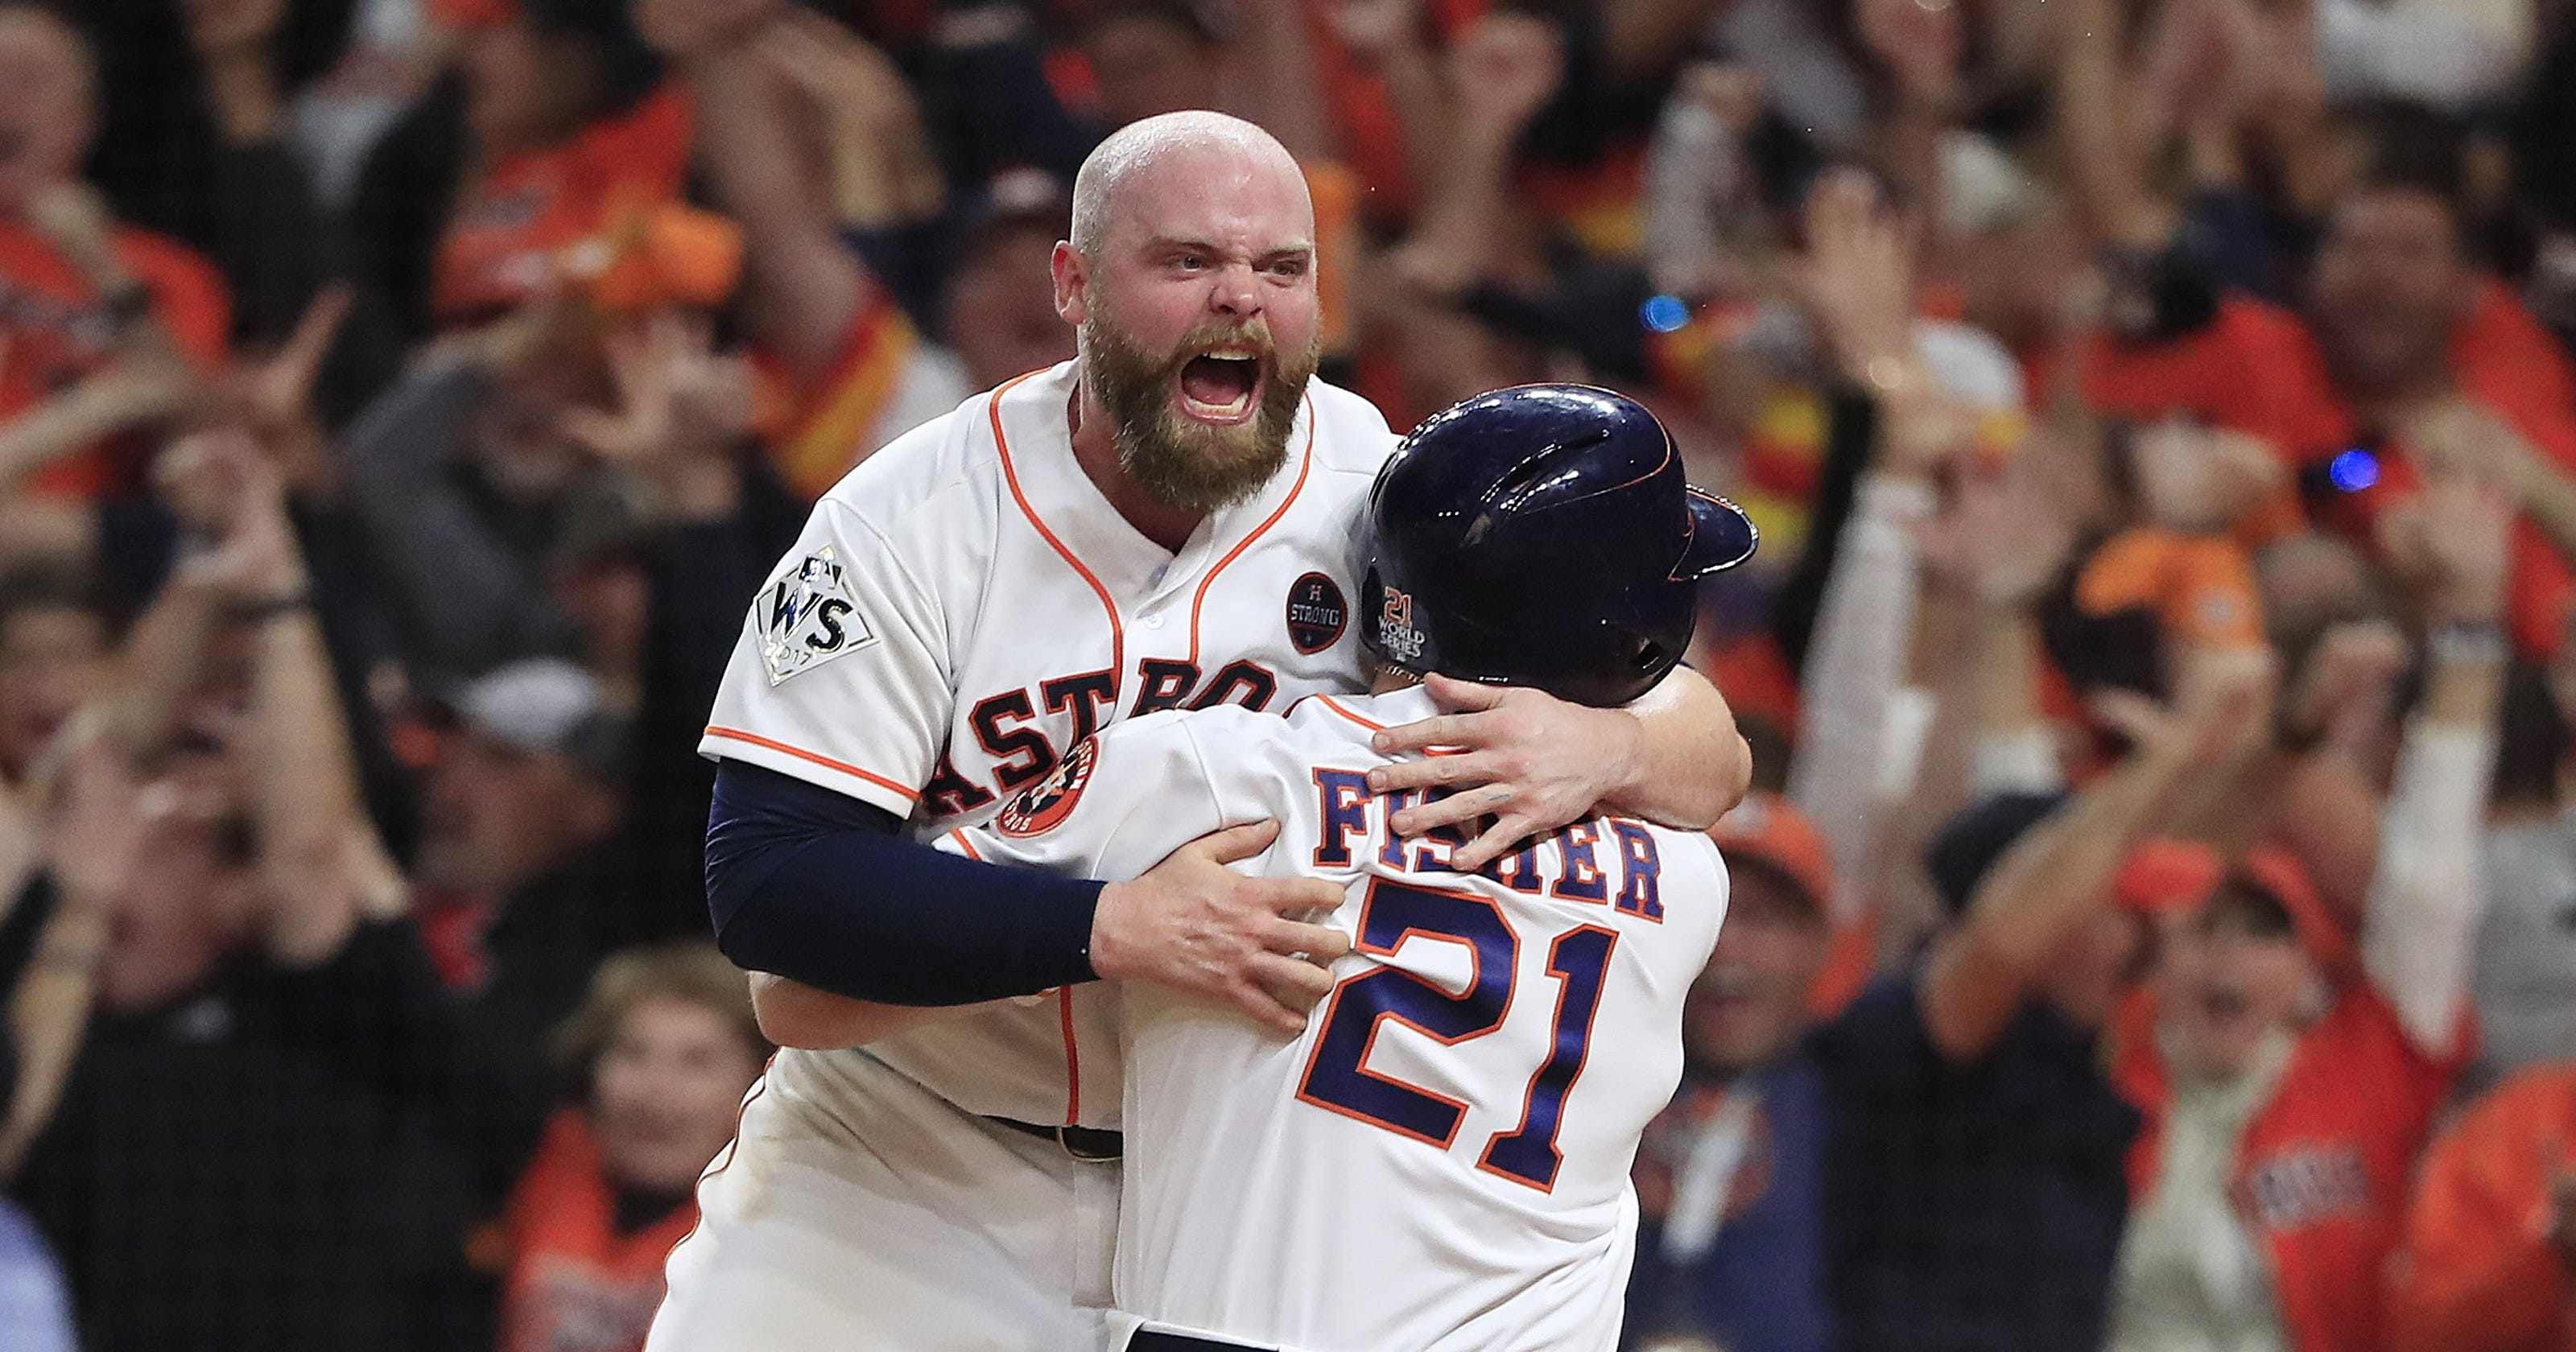 876a07b638b World Series  Astros walk off with crazy 13-12 win to take 3-2 lead over  Dodgers